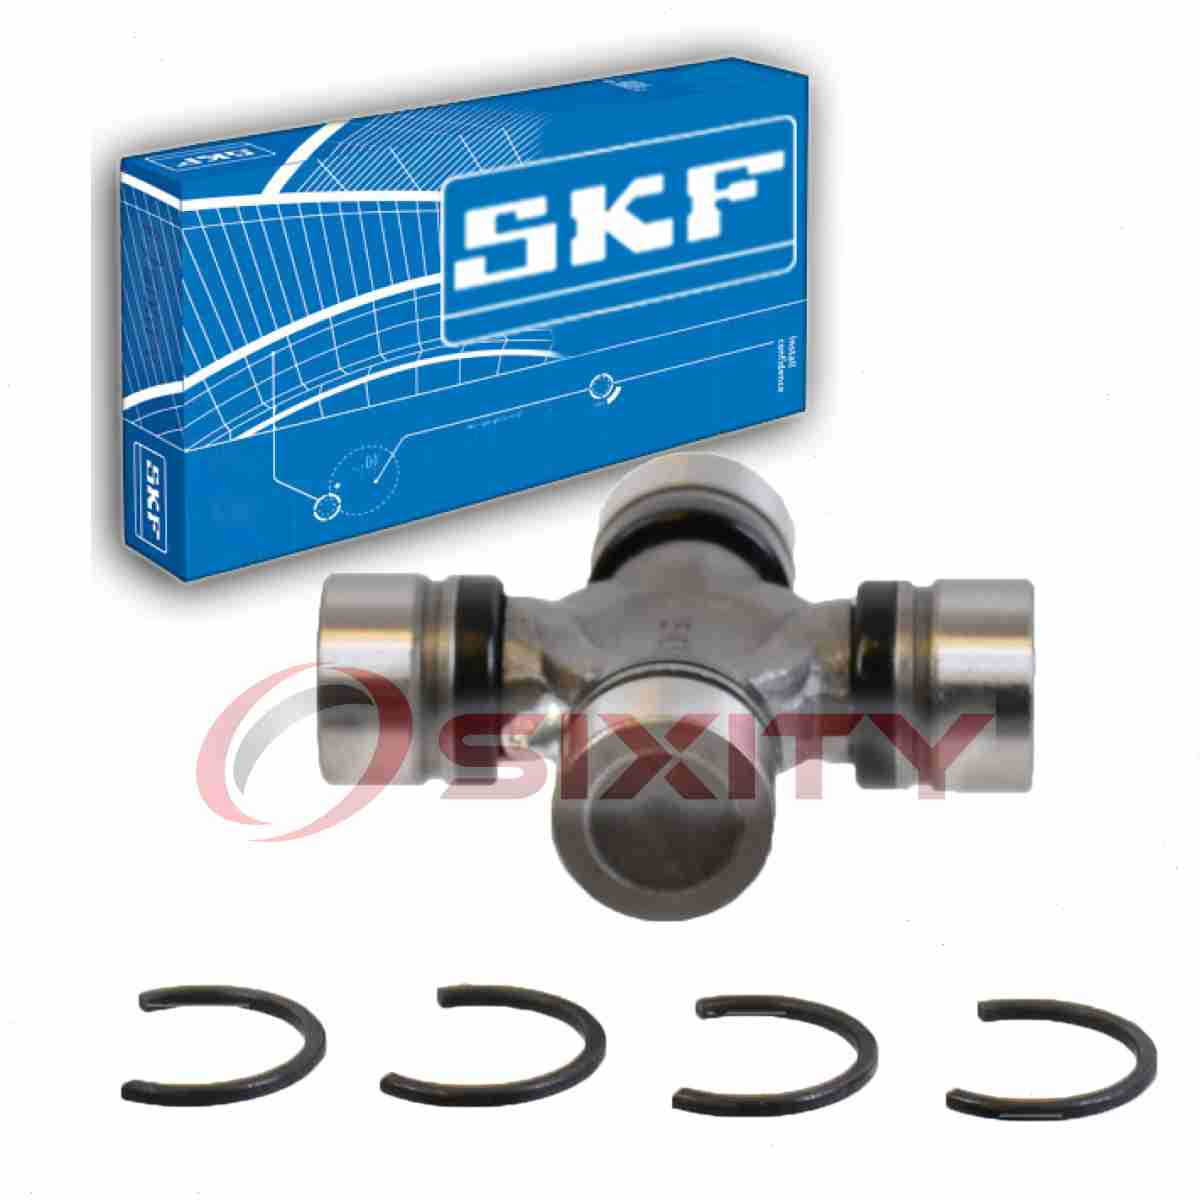 SKF Rear Shaft Front Joint Universal Joint for 2001-2008 Chevrolet Suburban qt